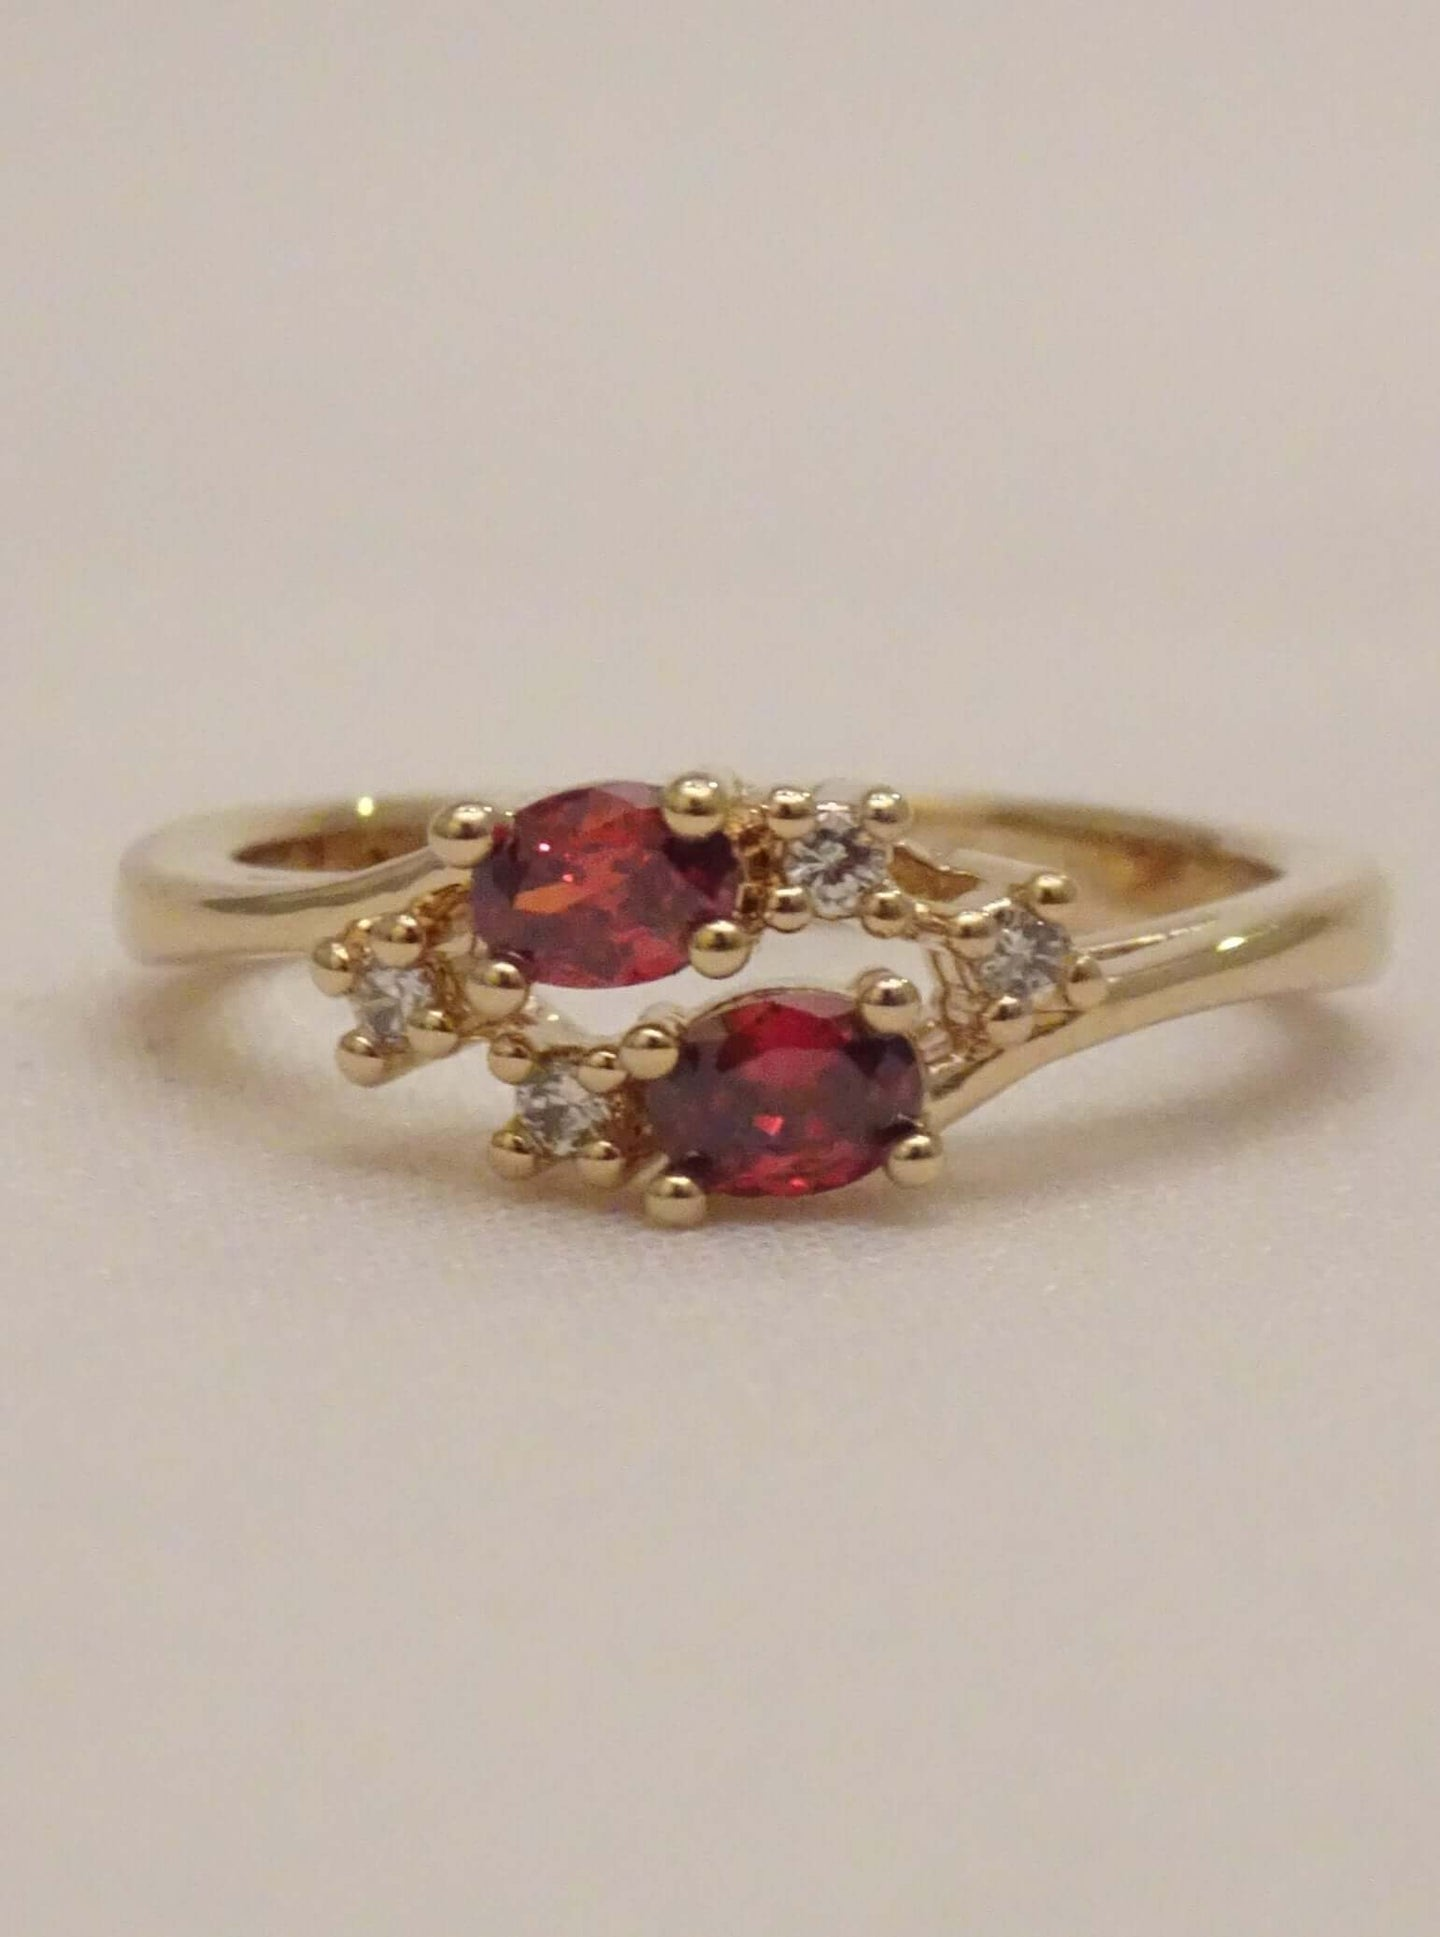 January birthstone rings, Garnet ring, garnet ring gold, Birthstone rings, gold birthstone rings, birthstone rings for mom, mothers birthstone ring, birthstone rings for women, dainty rings, dainty gold rings